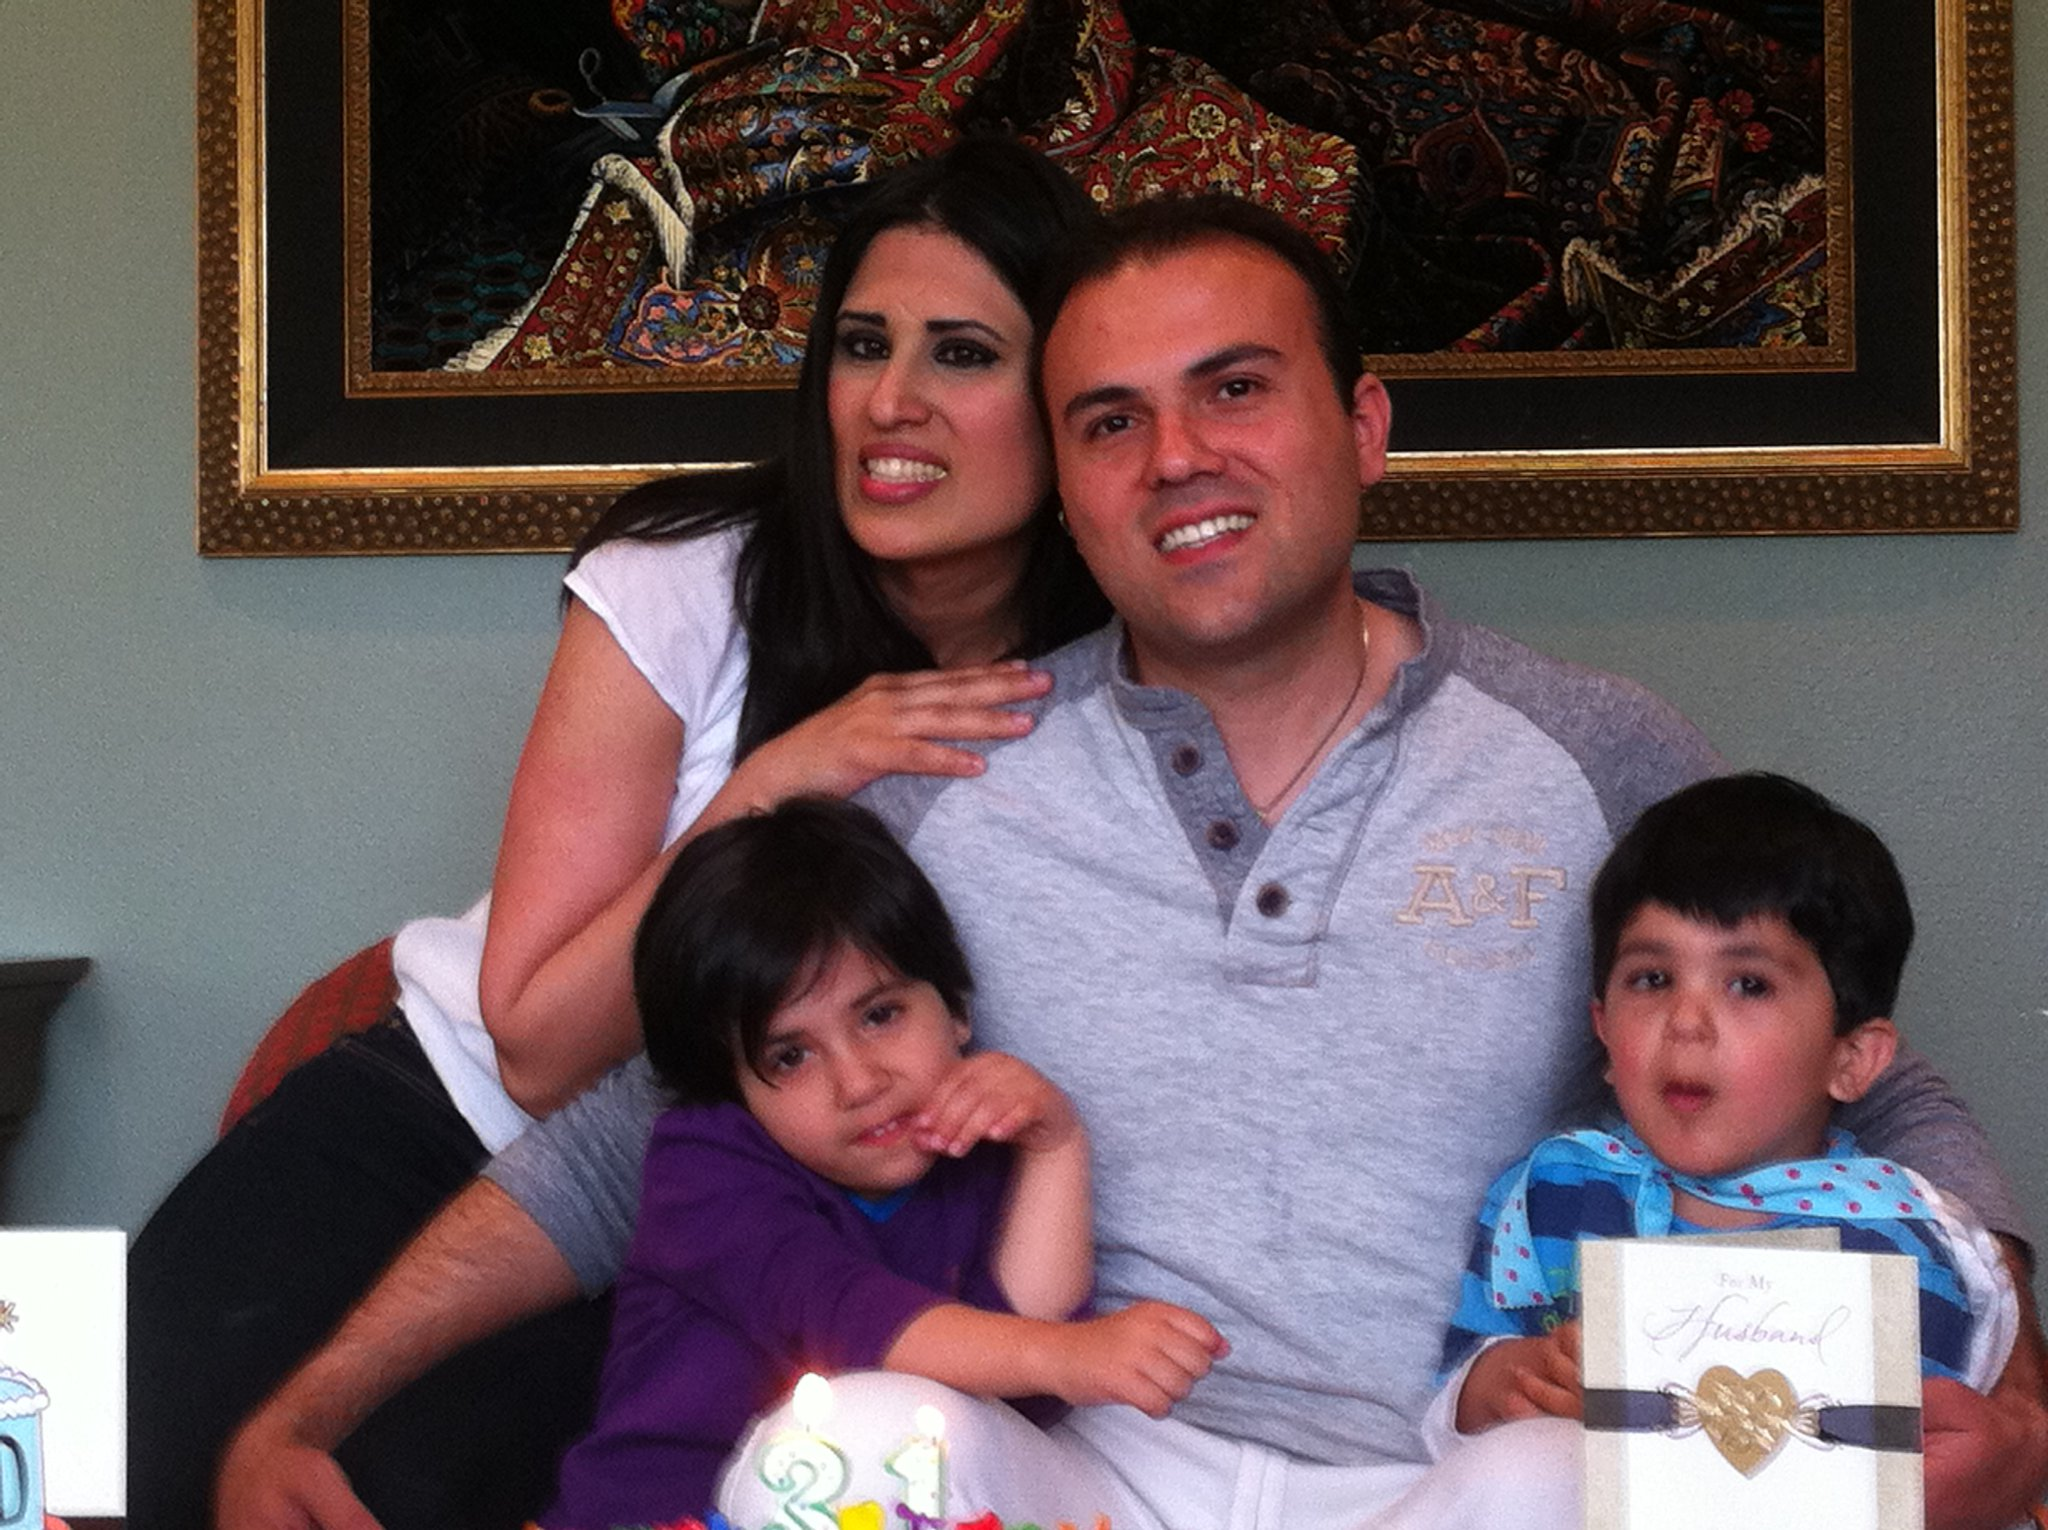 Christian Pastor Saeed Abedini and family